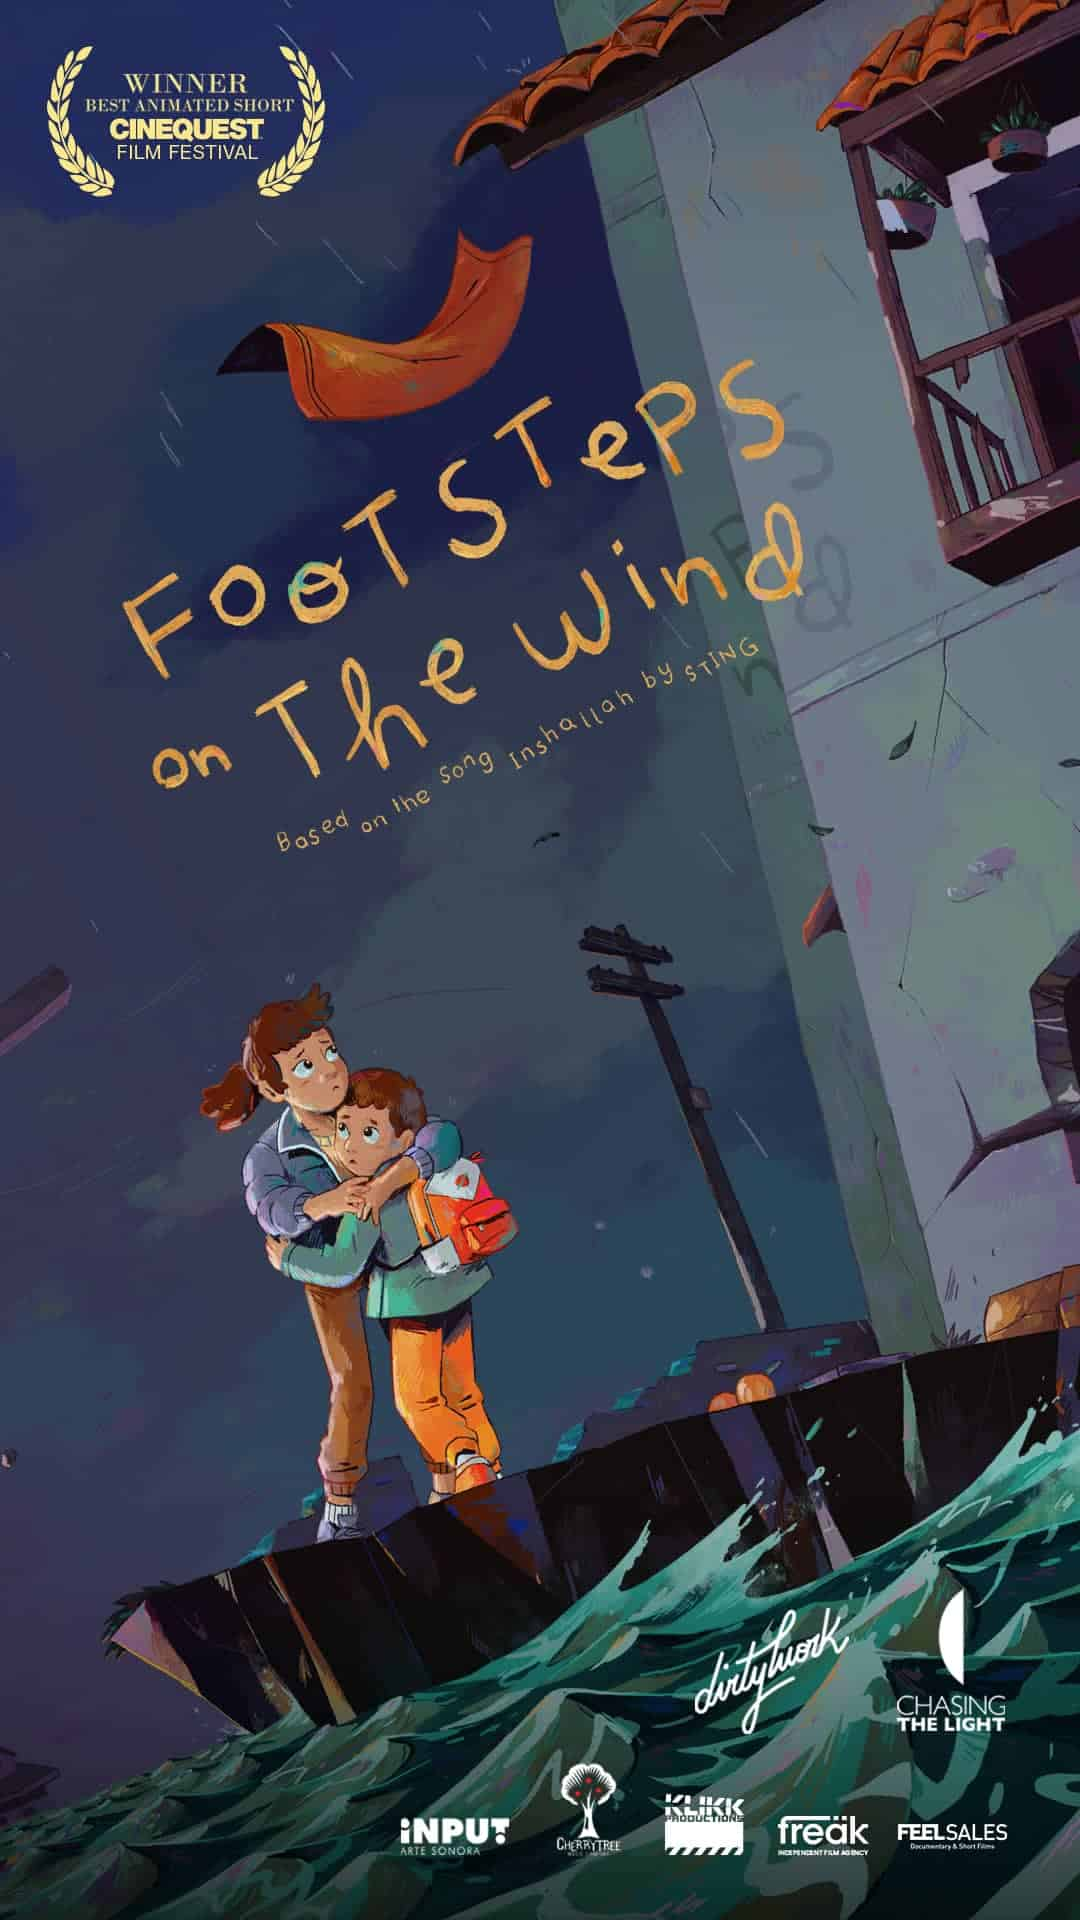 Poster - Footsteps On The Wind (2021)